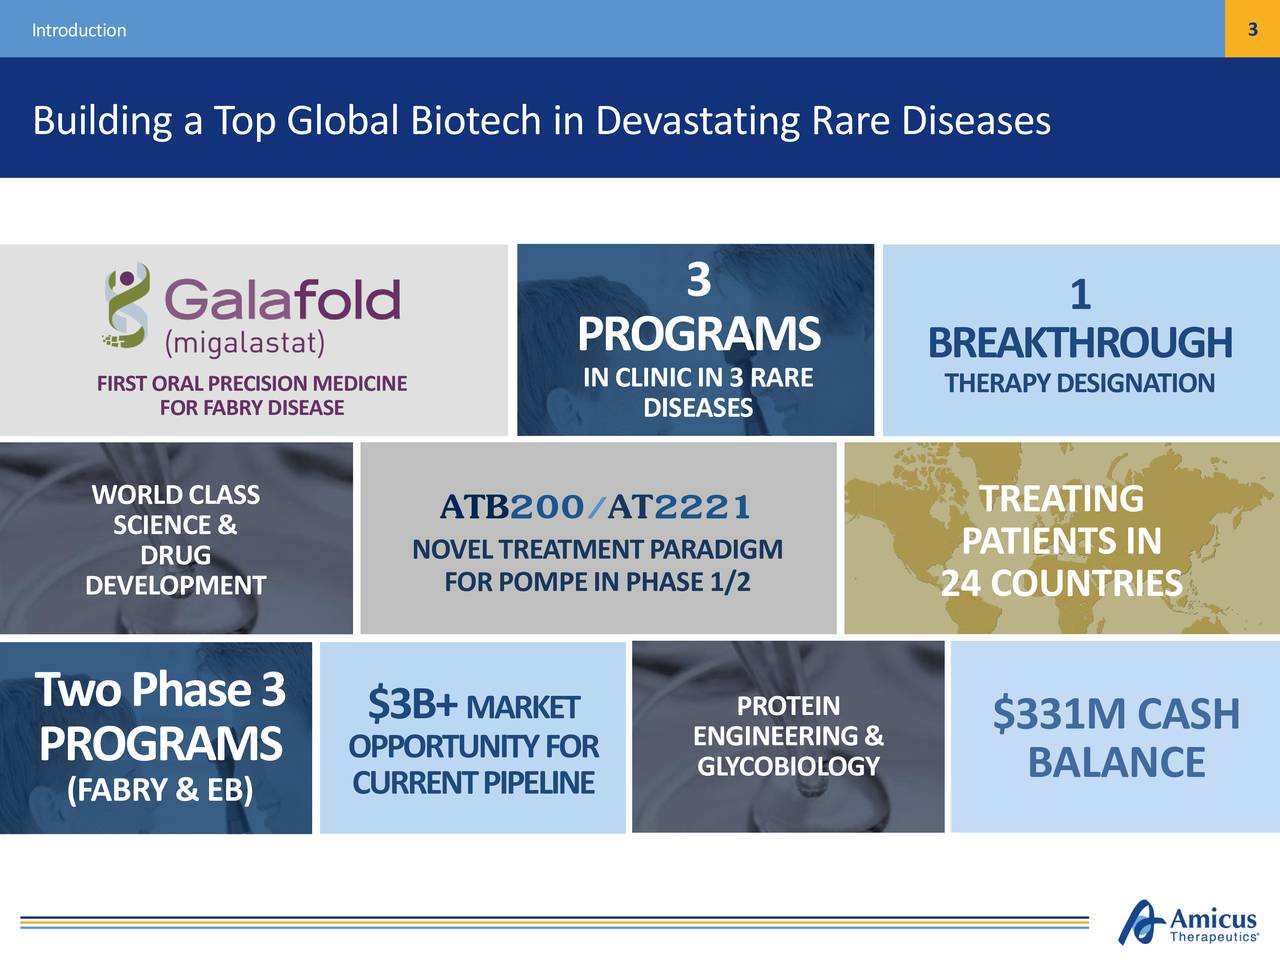 Building a Top Global Biotech in Devastating Rare Diseases 3 1 PROGRAMS INCLINICIN3RARE BREAKTHROUGH FIRFORFABRYDISEASEMEDICINE DISEASES THERAPYDESIGNATION WSCIENCE&S ATB200/AT2221 TREATING DRUG NOVELTREATMENTPARADIGM PATIENTS IN DEVELOPMENT FORPOMPEINPHASE1/2 24 COUNTRIES TwoPhase3 $3B+ MARKET PROTEIN ENGINEERING& $331M CASH PROGRAMS OCURRENTPIPELINE GLYCOBIOLOGY BALANCE (FABRY&EB)